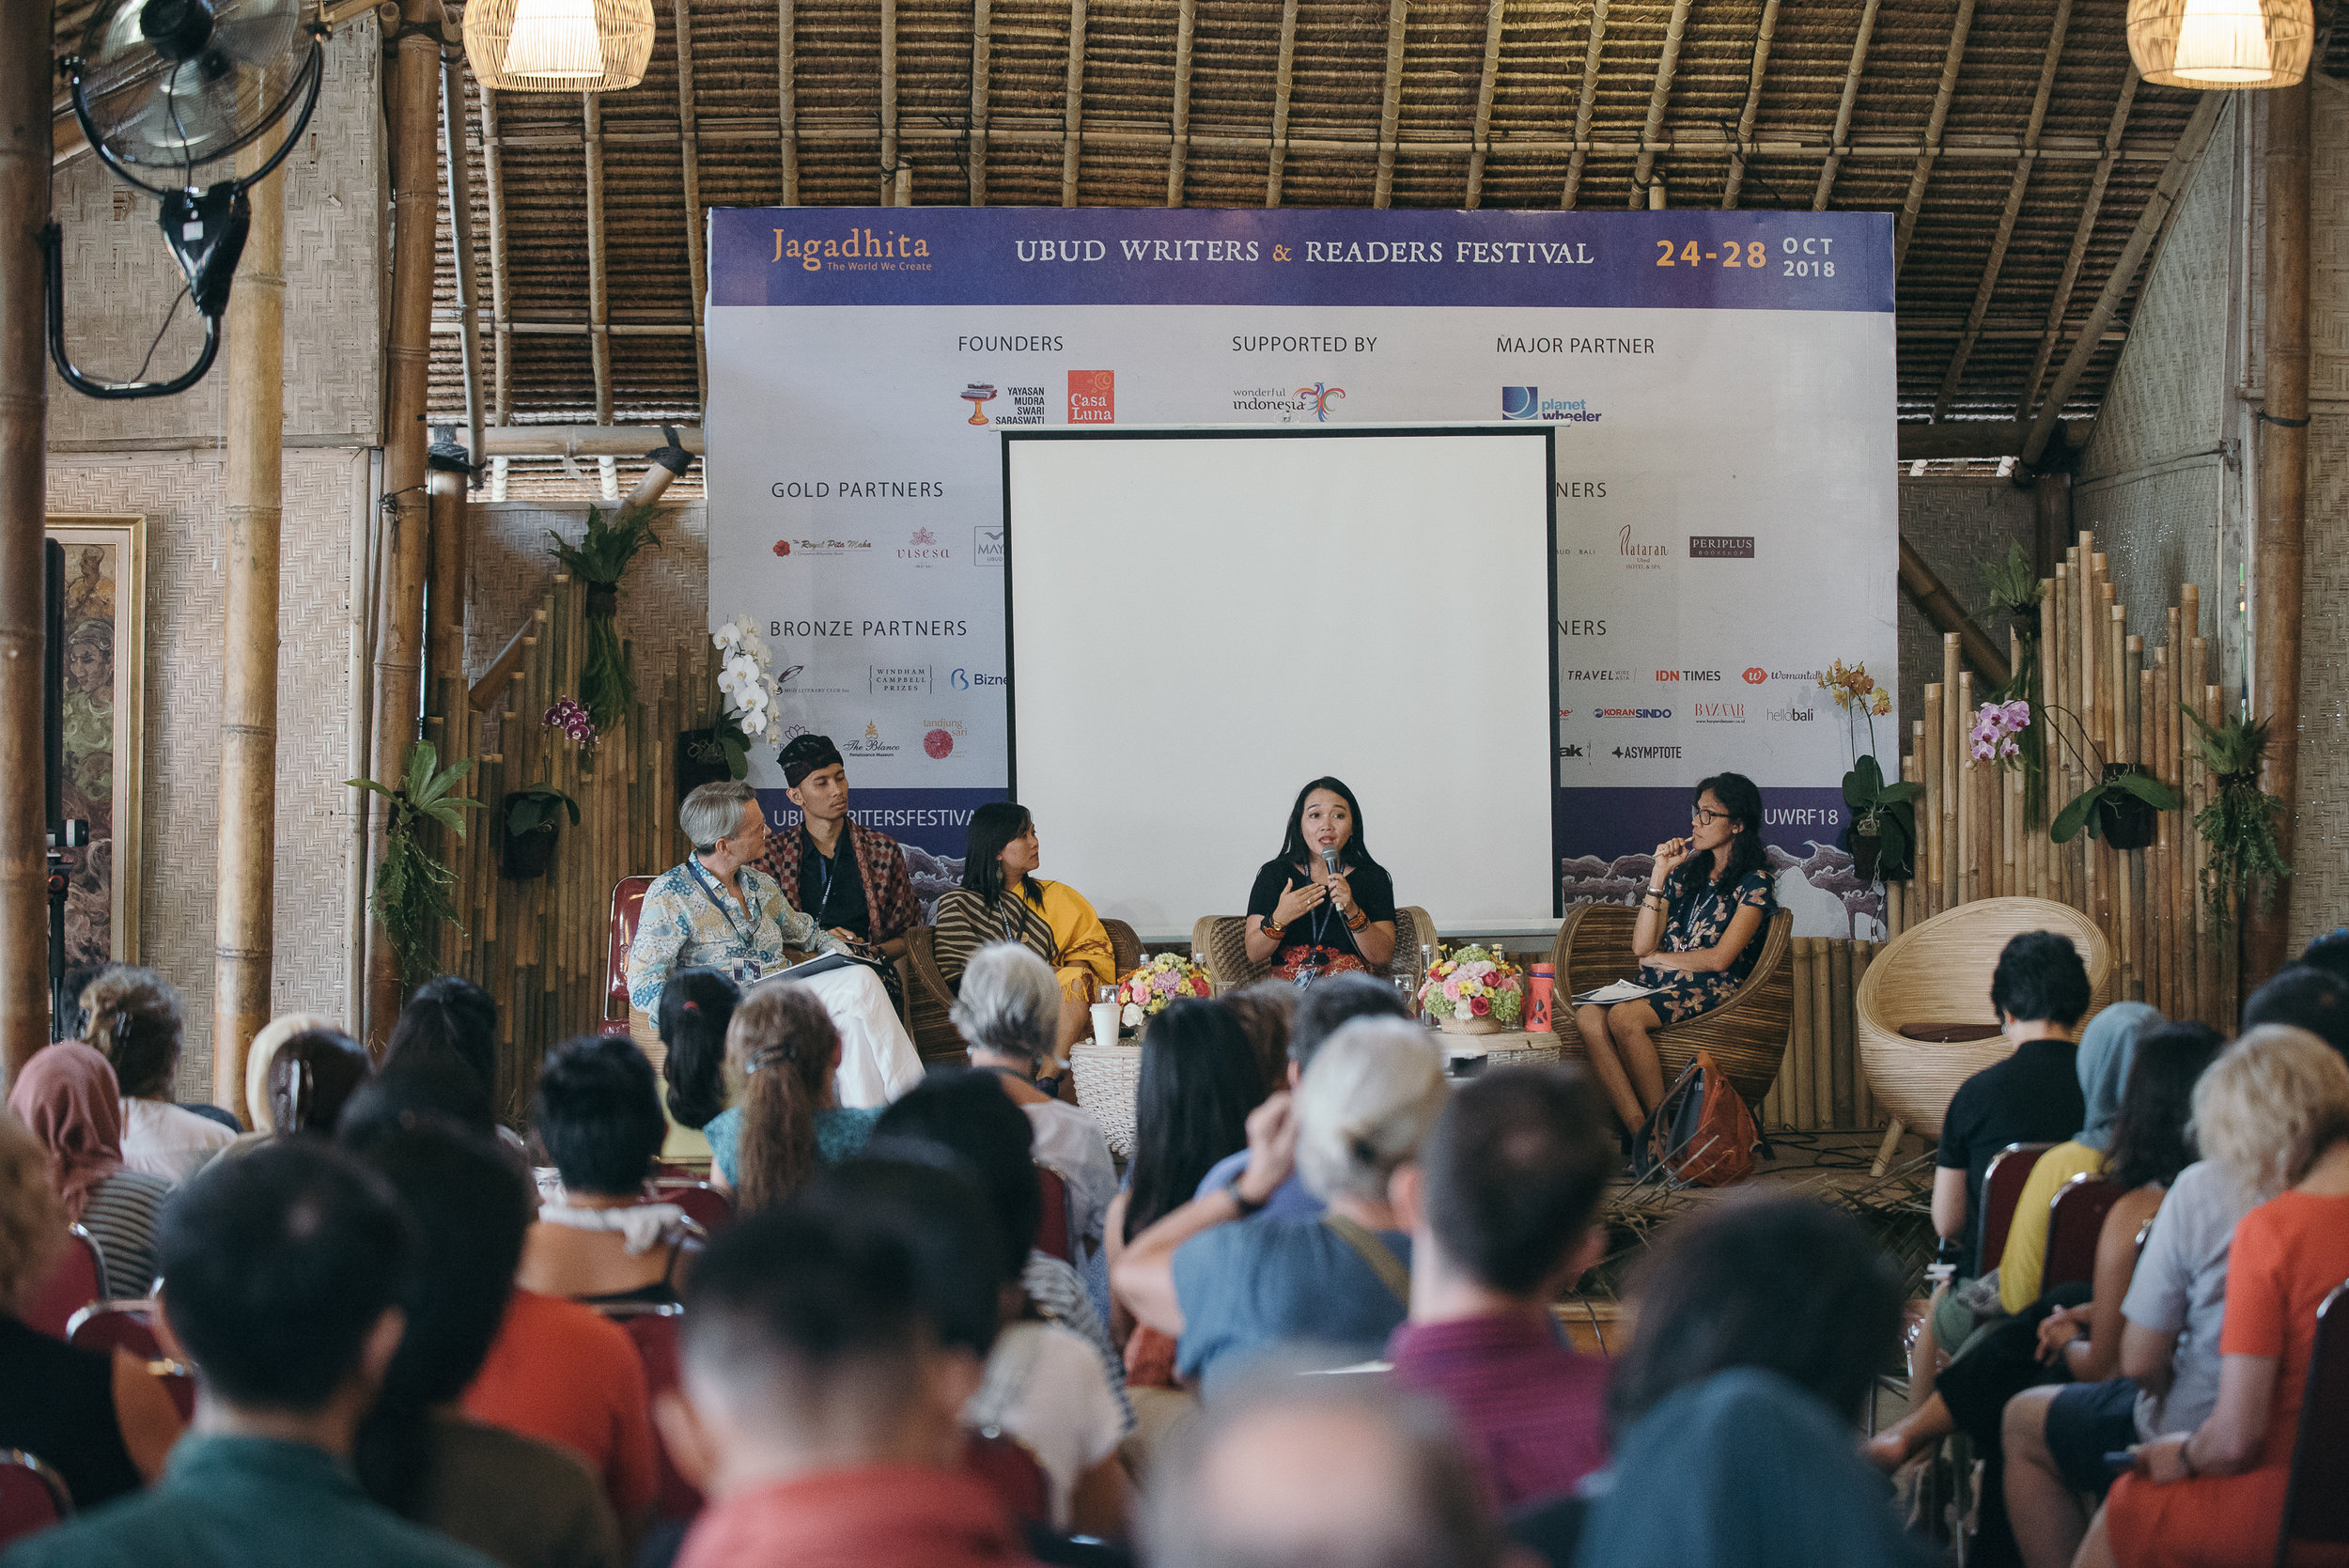 Young Dayak activists speak in international forum. Photograph: Wayan Martino